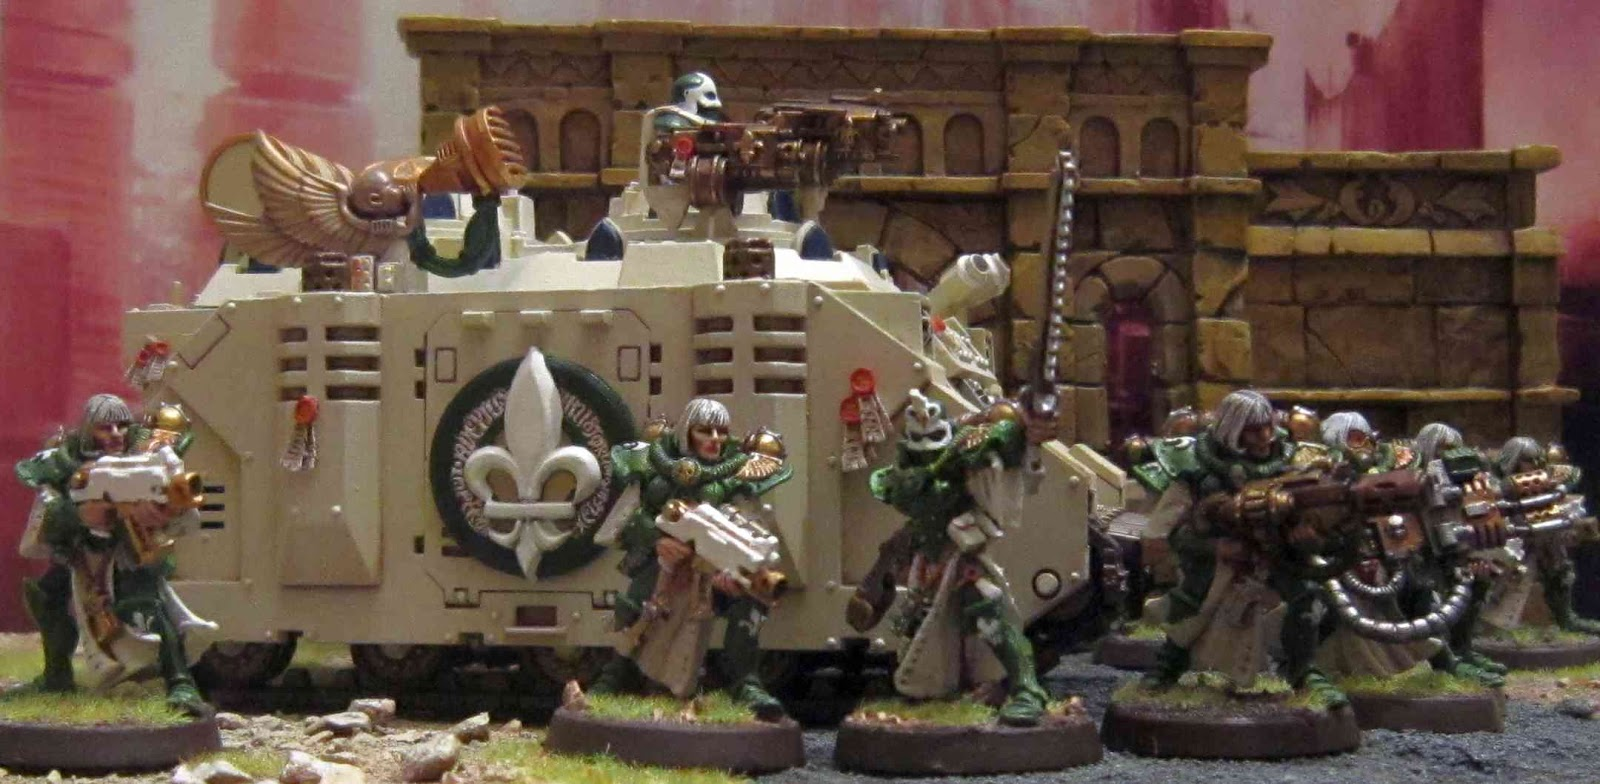 battle sister squard by - photo #10